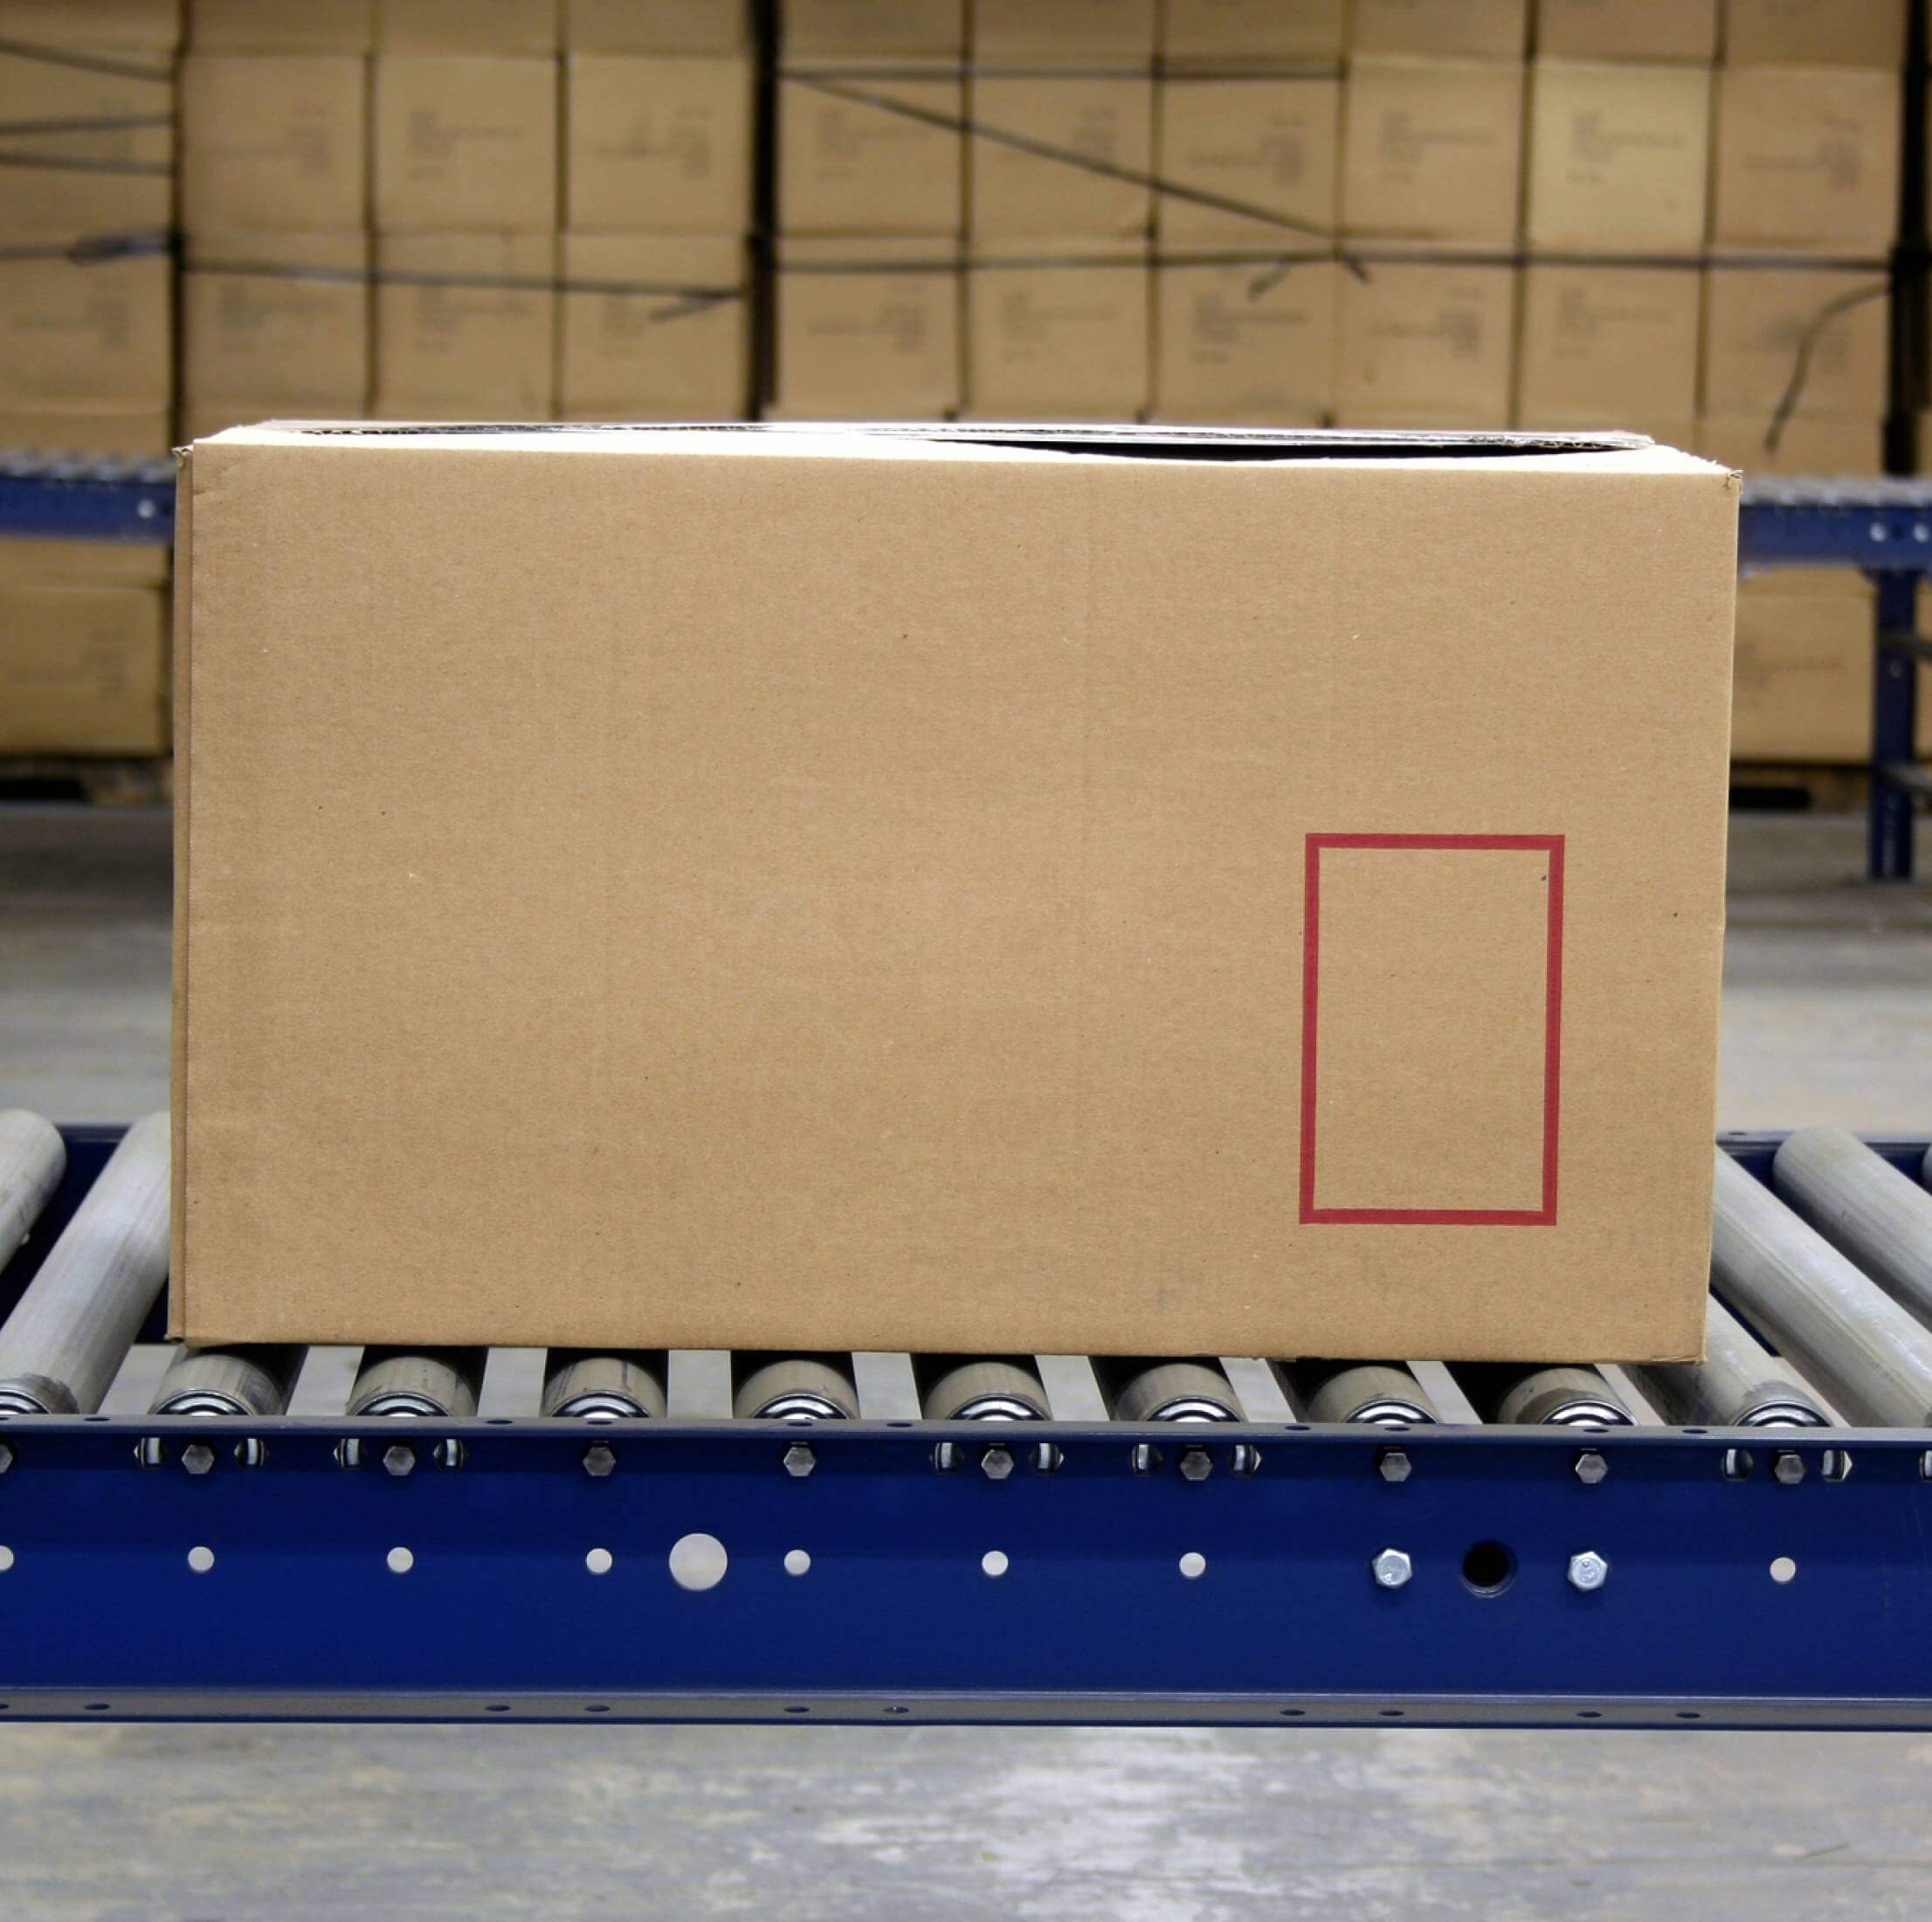 Fulfillment with Digital Warehousing - Stockarea